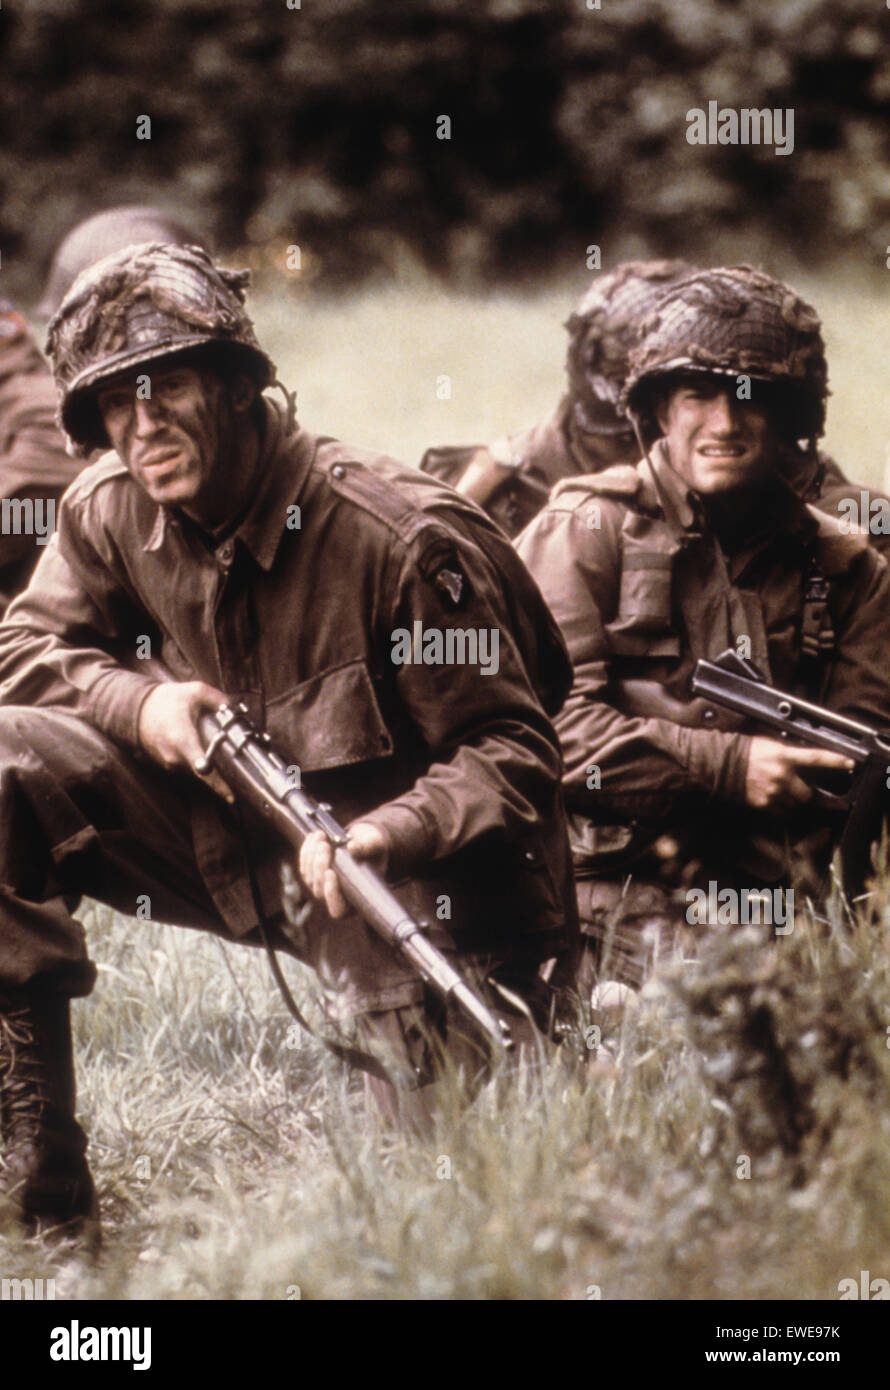 Band of Brothers - Stock Image